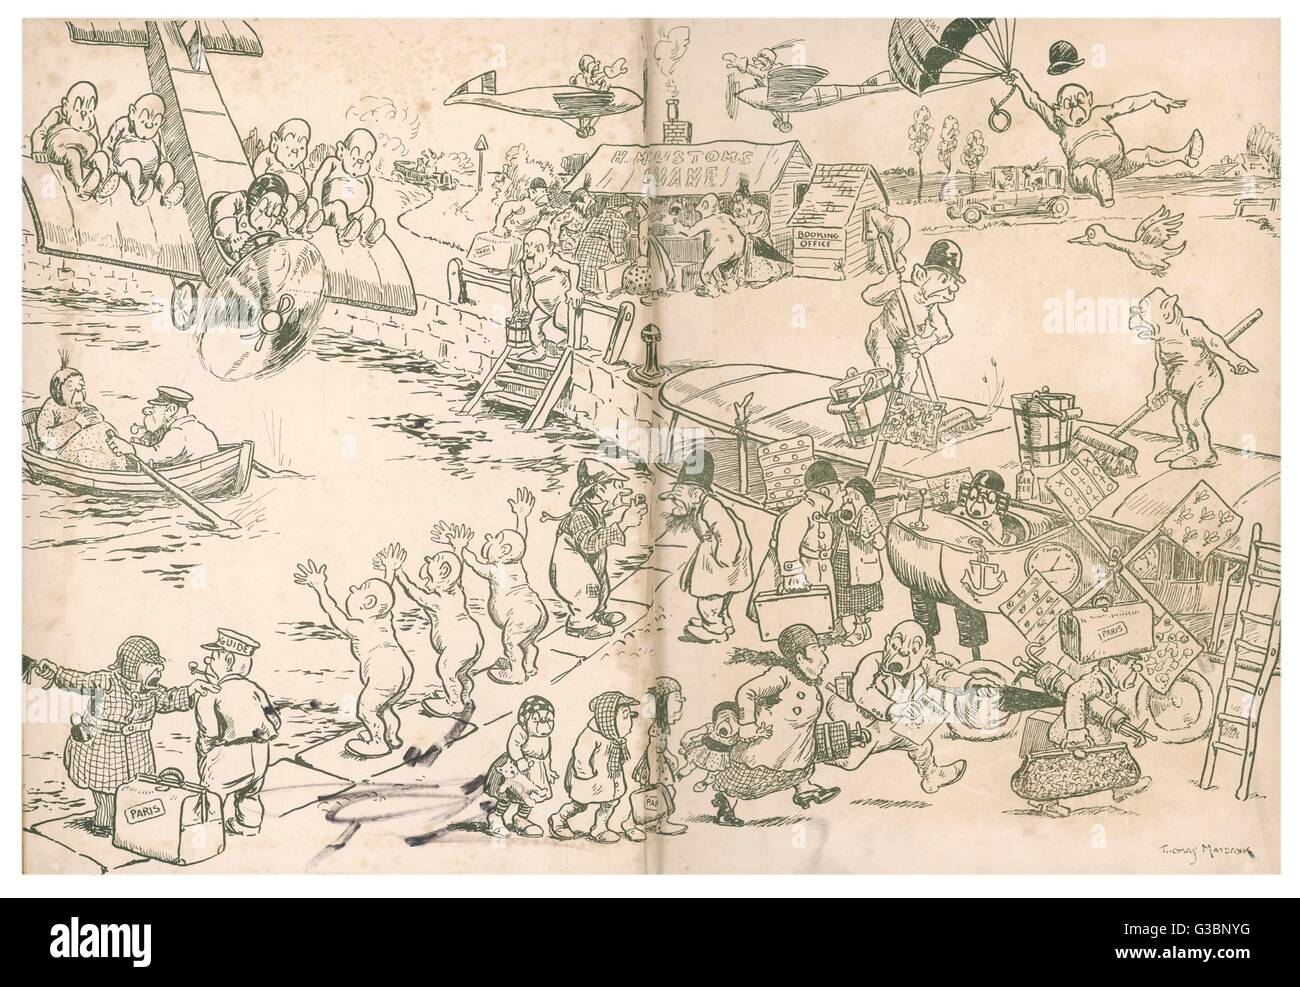 Illustration 1/2 A comical cartoon showing  elves or possibly pixies getting into mischief with  various aircraft - Stock Image